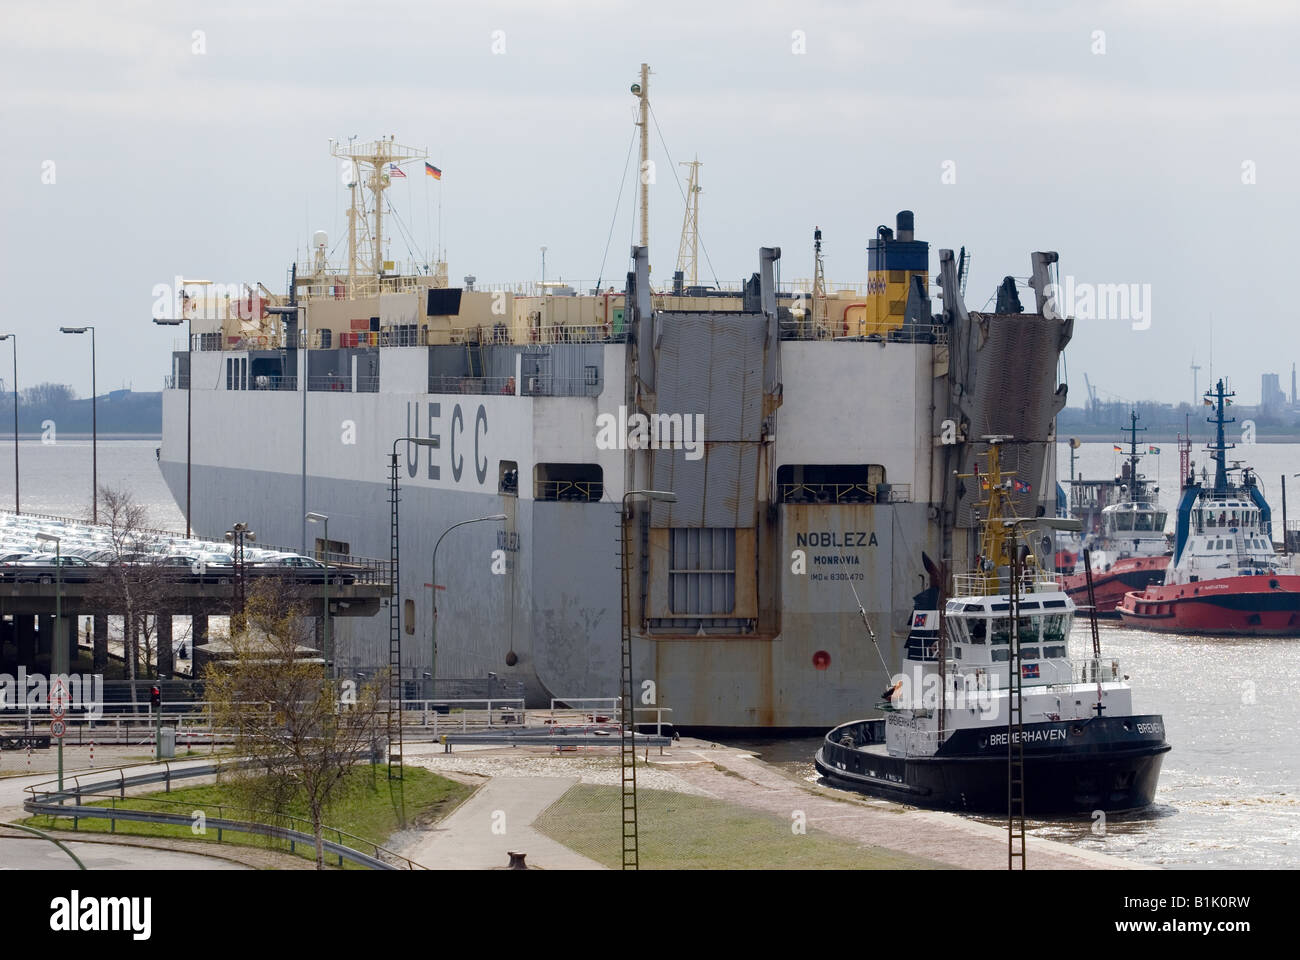 Car transporting ship at the port of Bremerhaven, Germany. - Stock Image